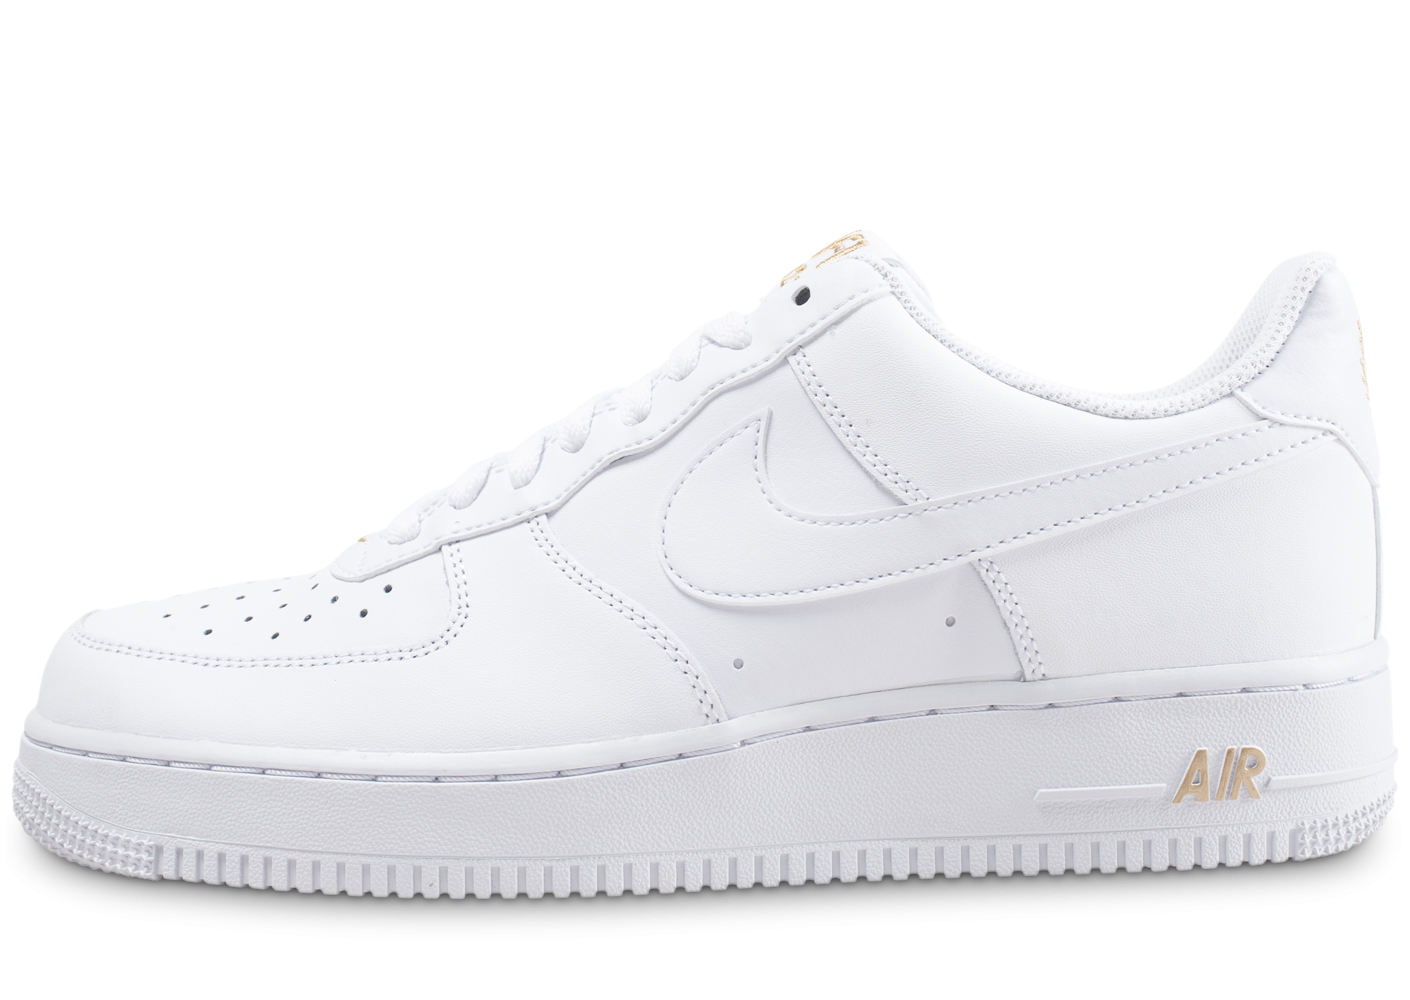 best sneakers ed42b 381d1 ... coupon code for nike air force 1 07 low blanche et or chaussures  baskets homme chausport